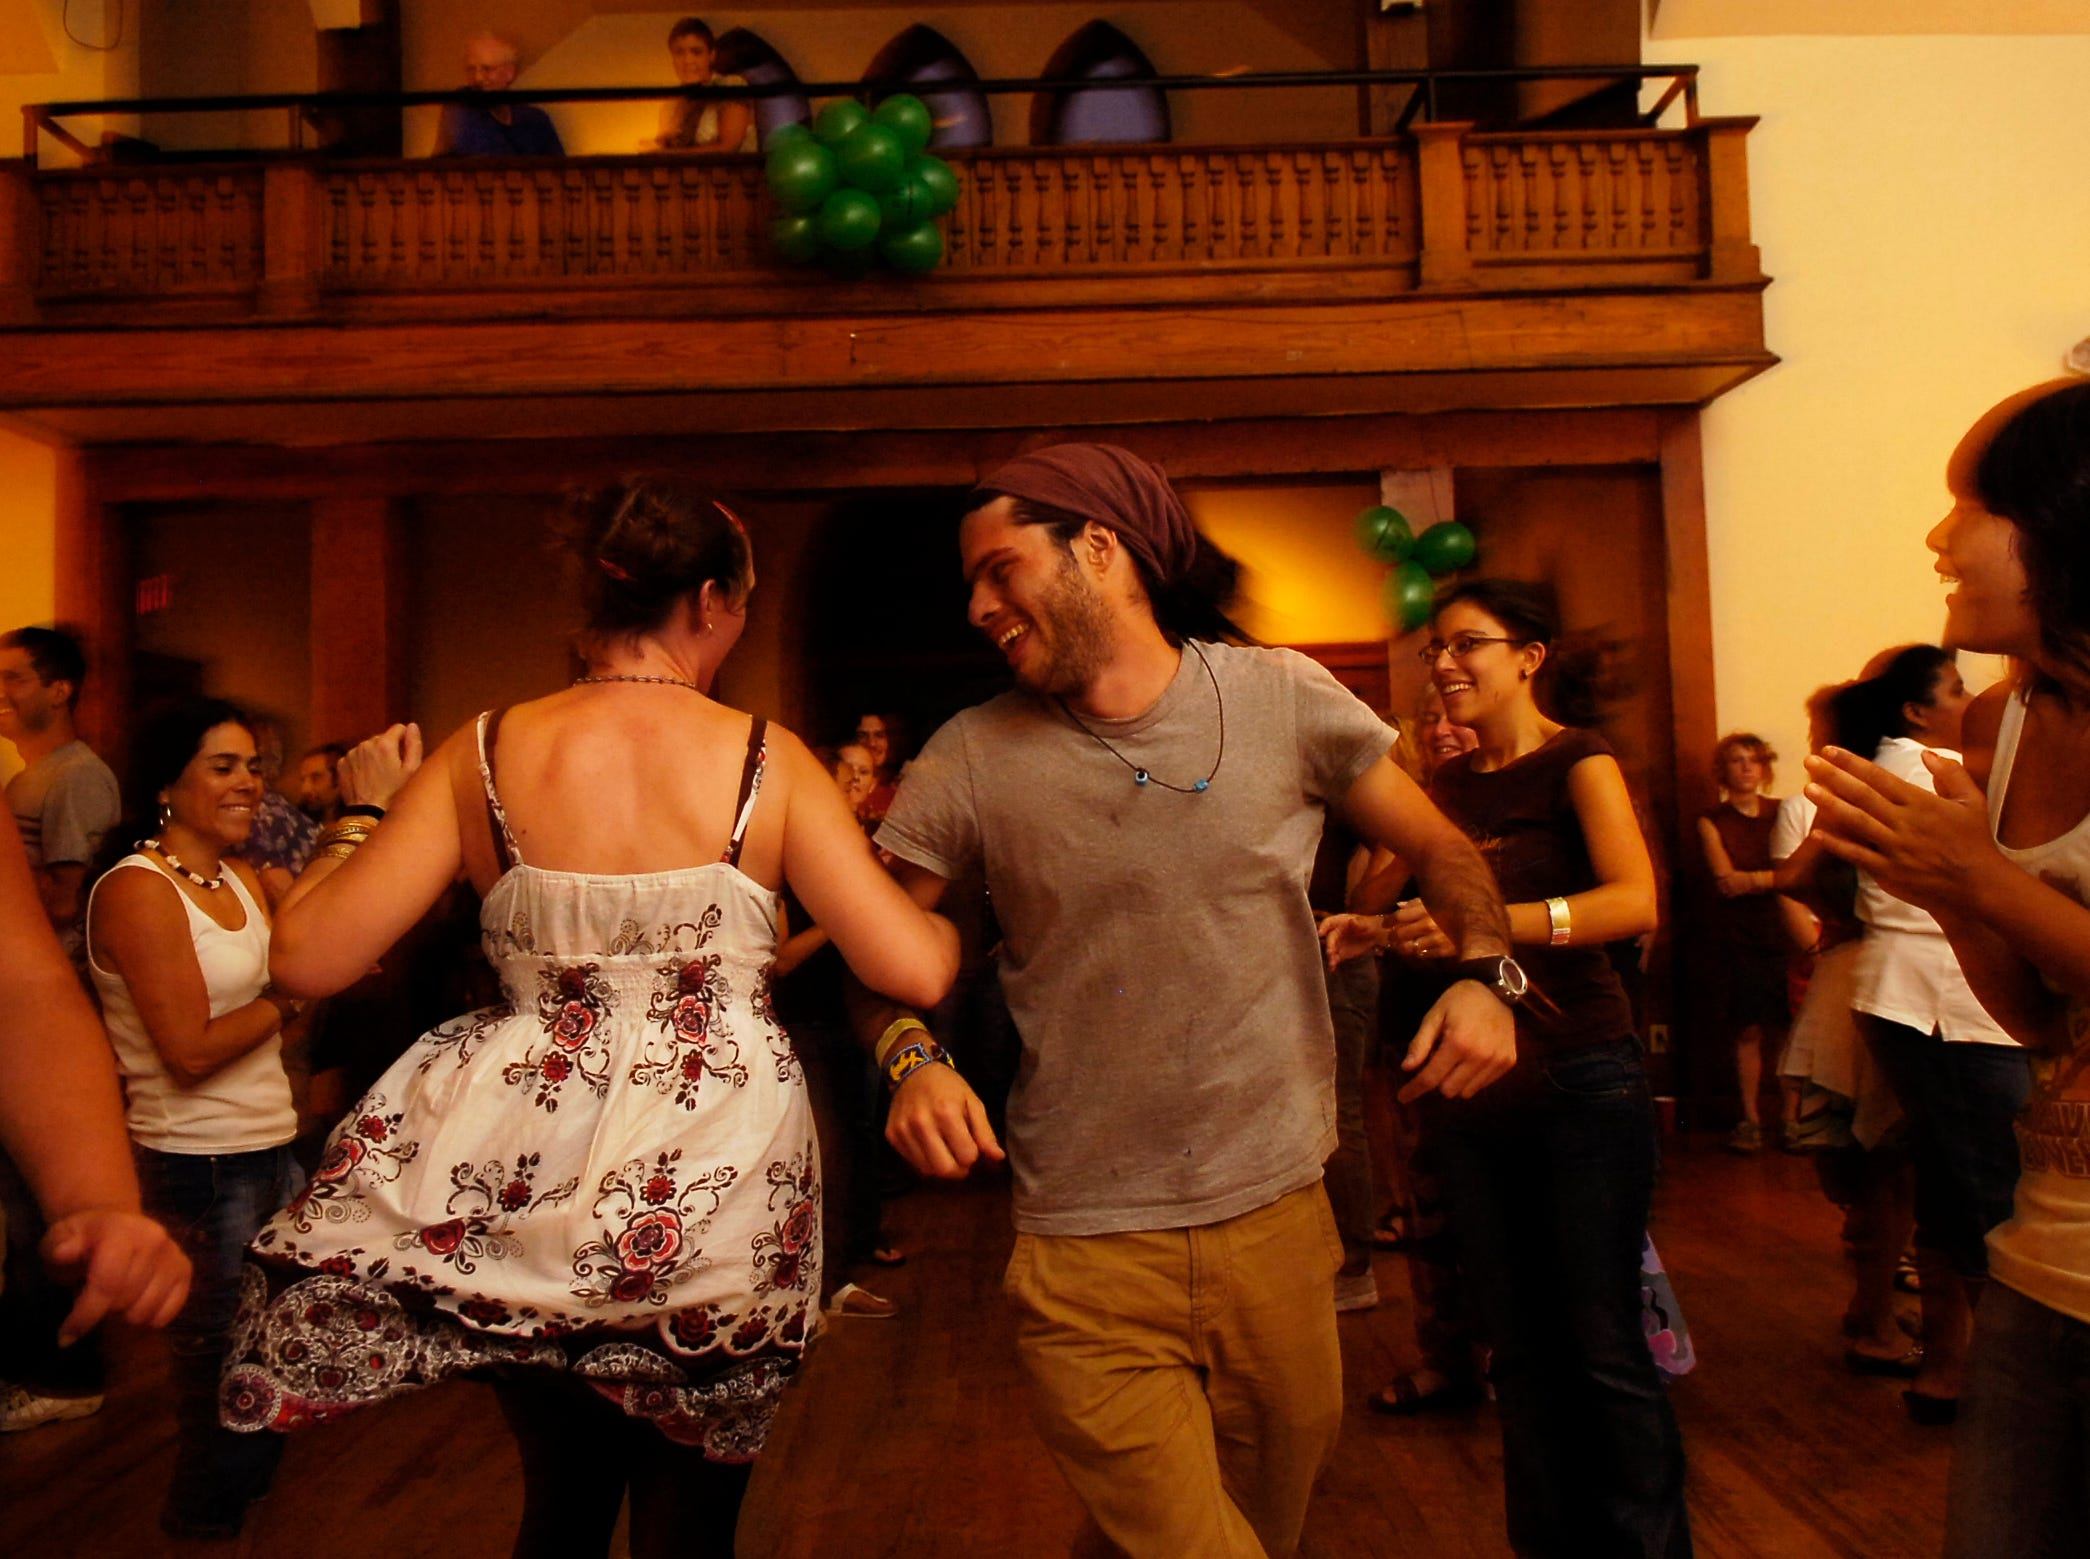 Ashley Sparks from Staunton, VA, and Alfonso Diaz from Mexico whirl to a contradanse tune during the Highlander Center for Research and Education's 75th anniversary celebration on Friday at the Laurel Theater.